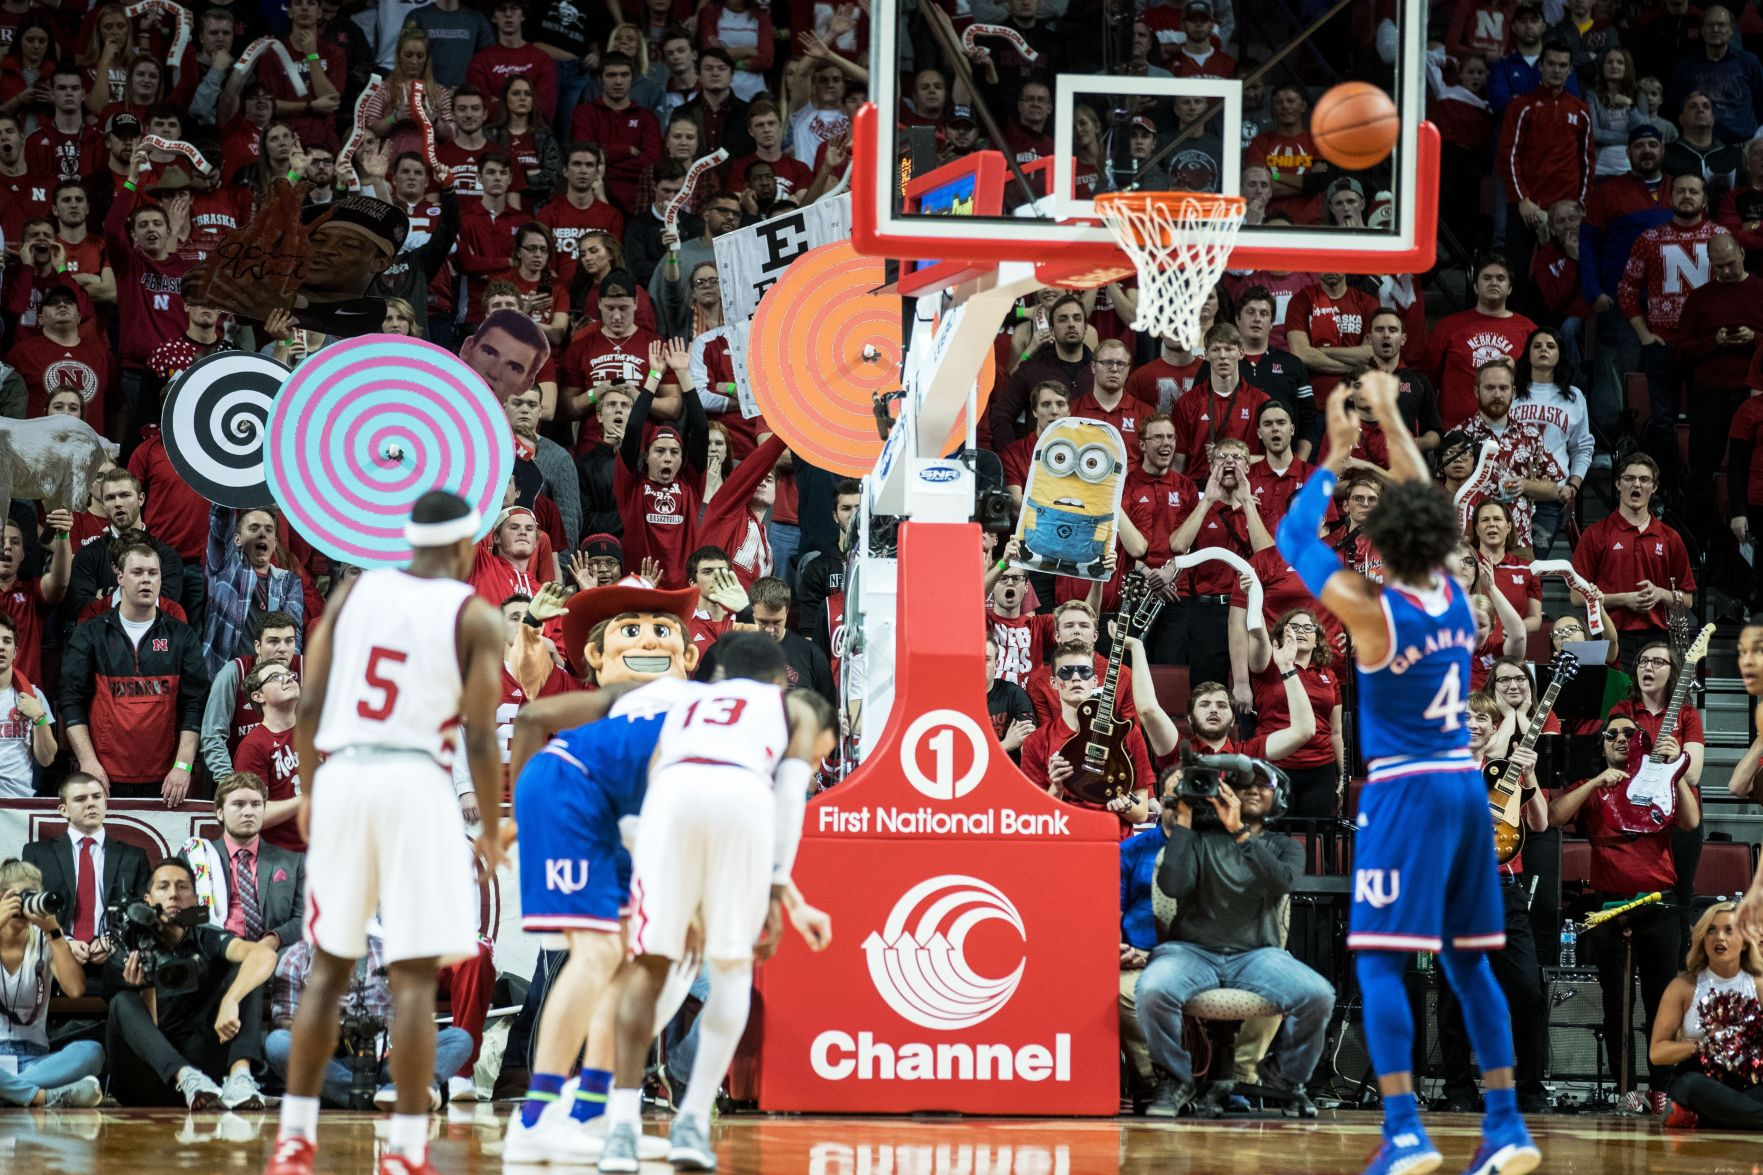 ku Mad Chatter Husker hoops has much